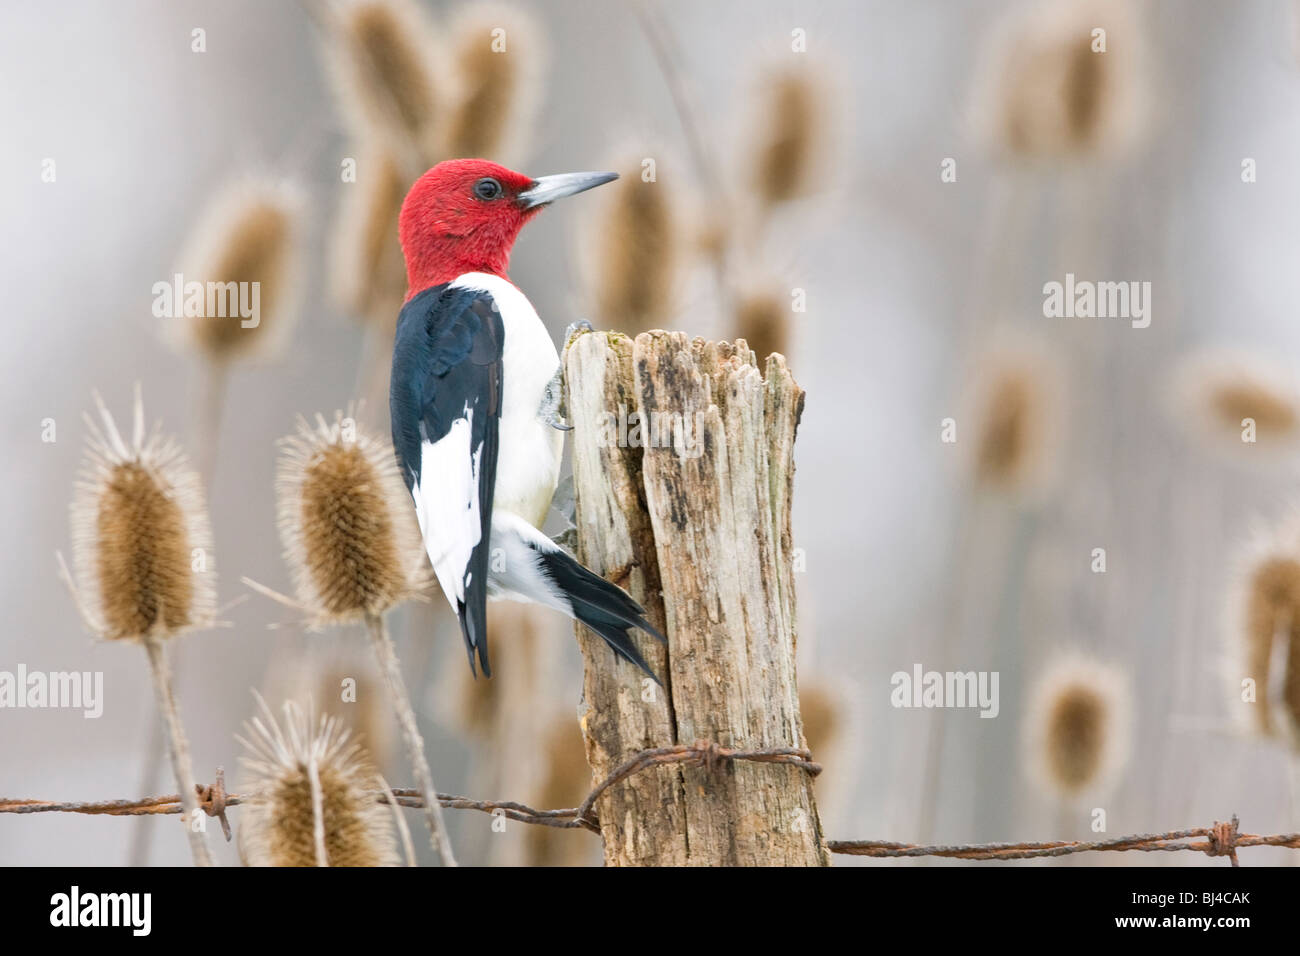 Red-headed Woodpecker on Fence Post Stock Photo